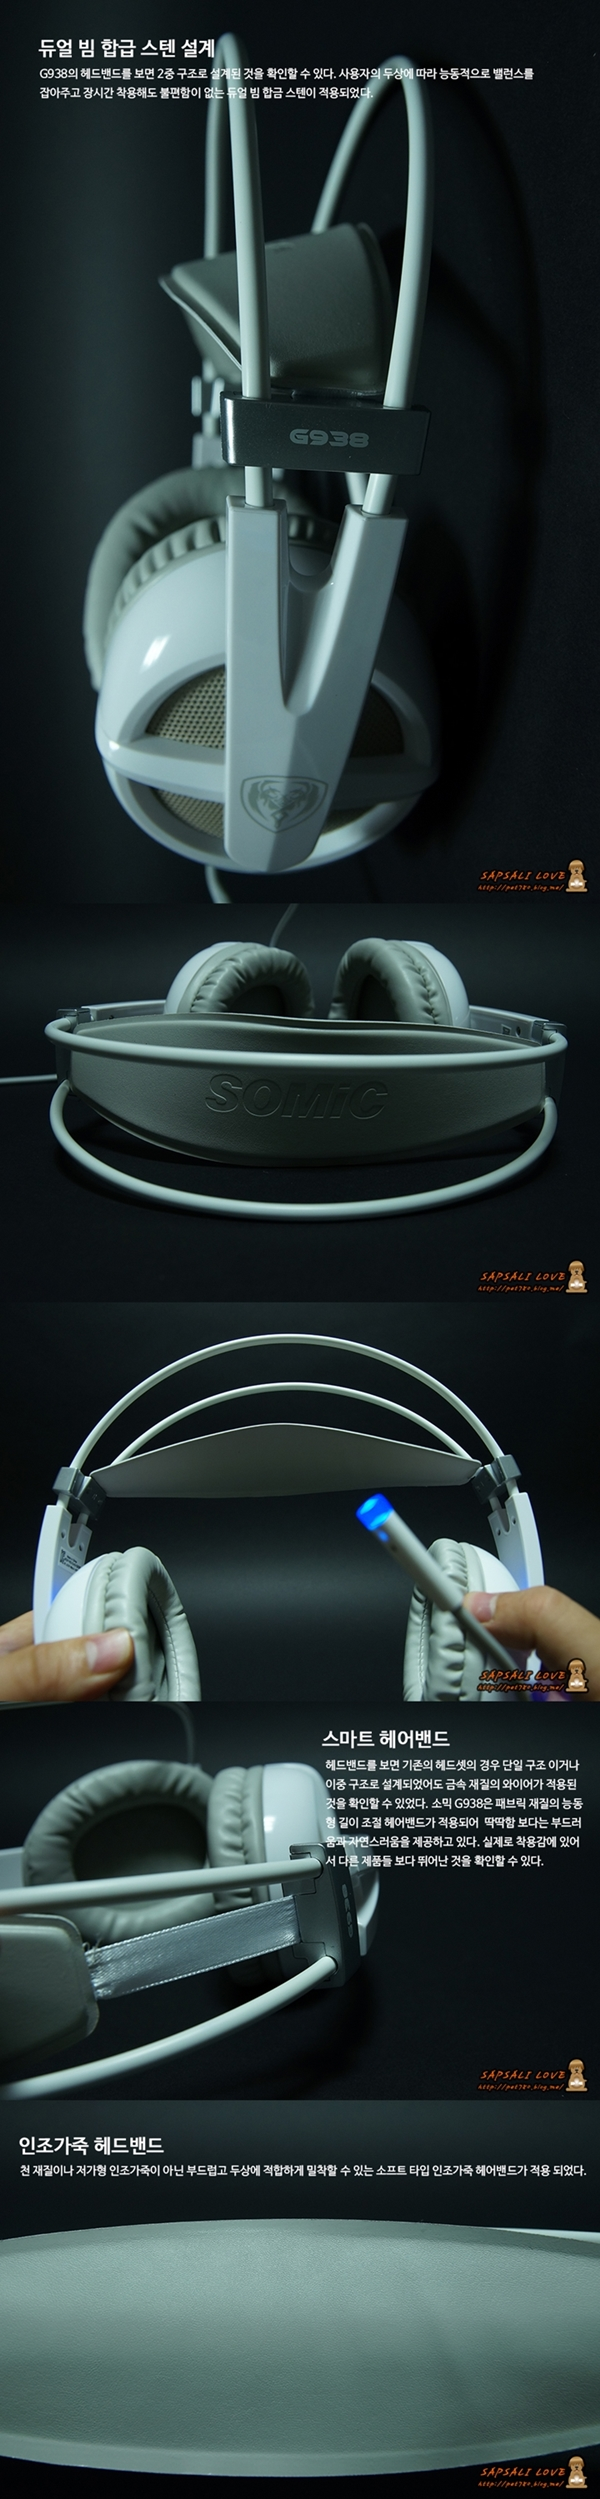 somic G938somic G938외형2 gaming headset gaming headset.jpg